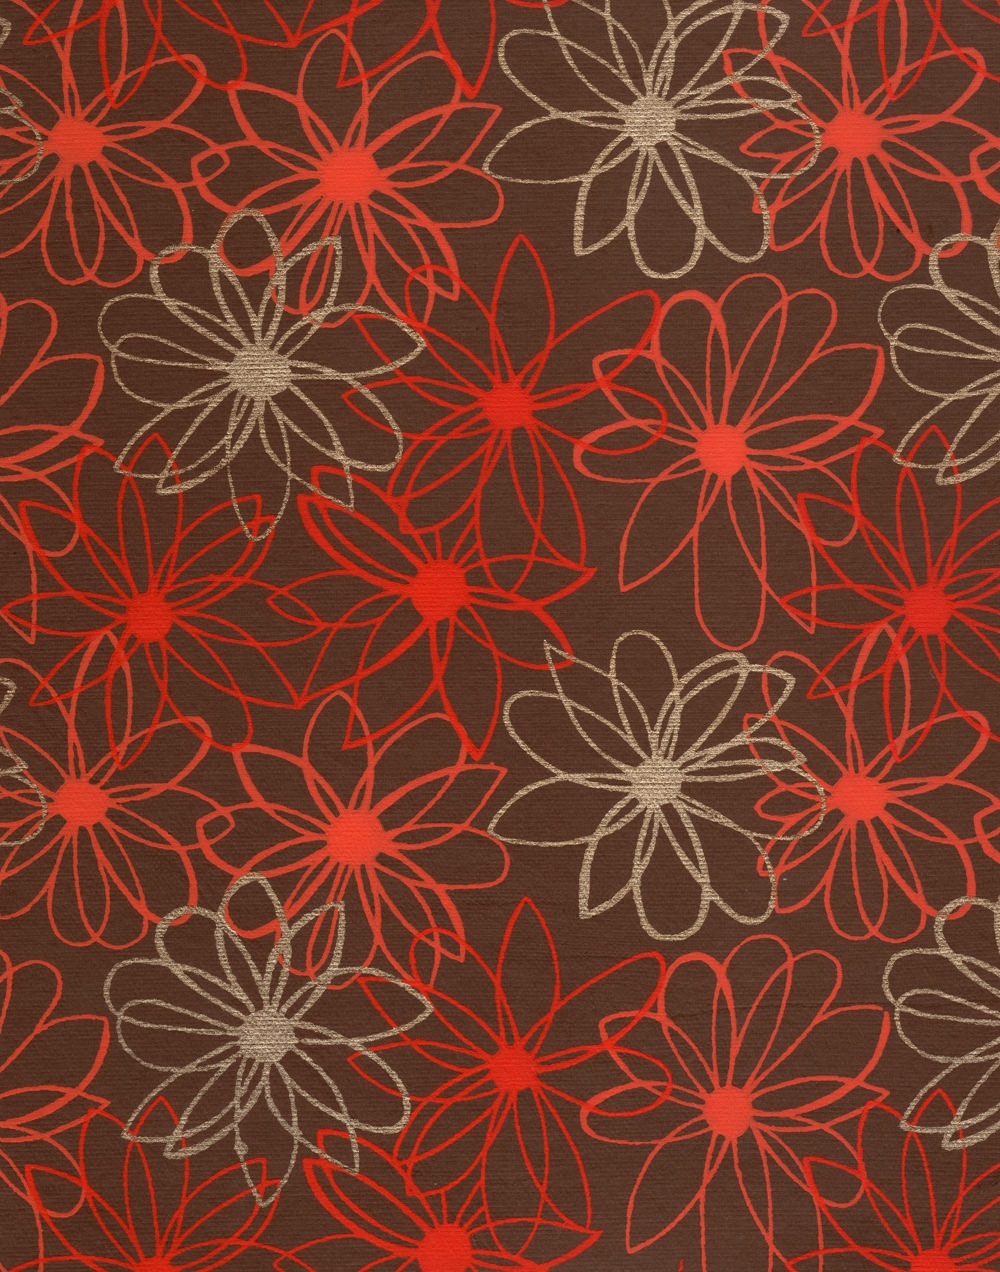 Red Floral paper Textures